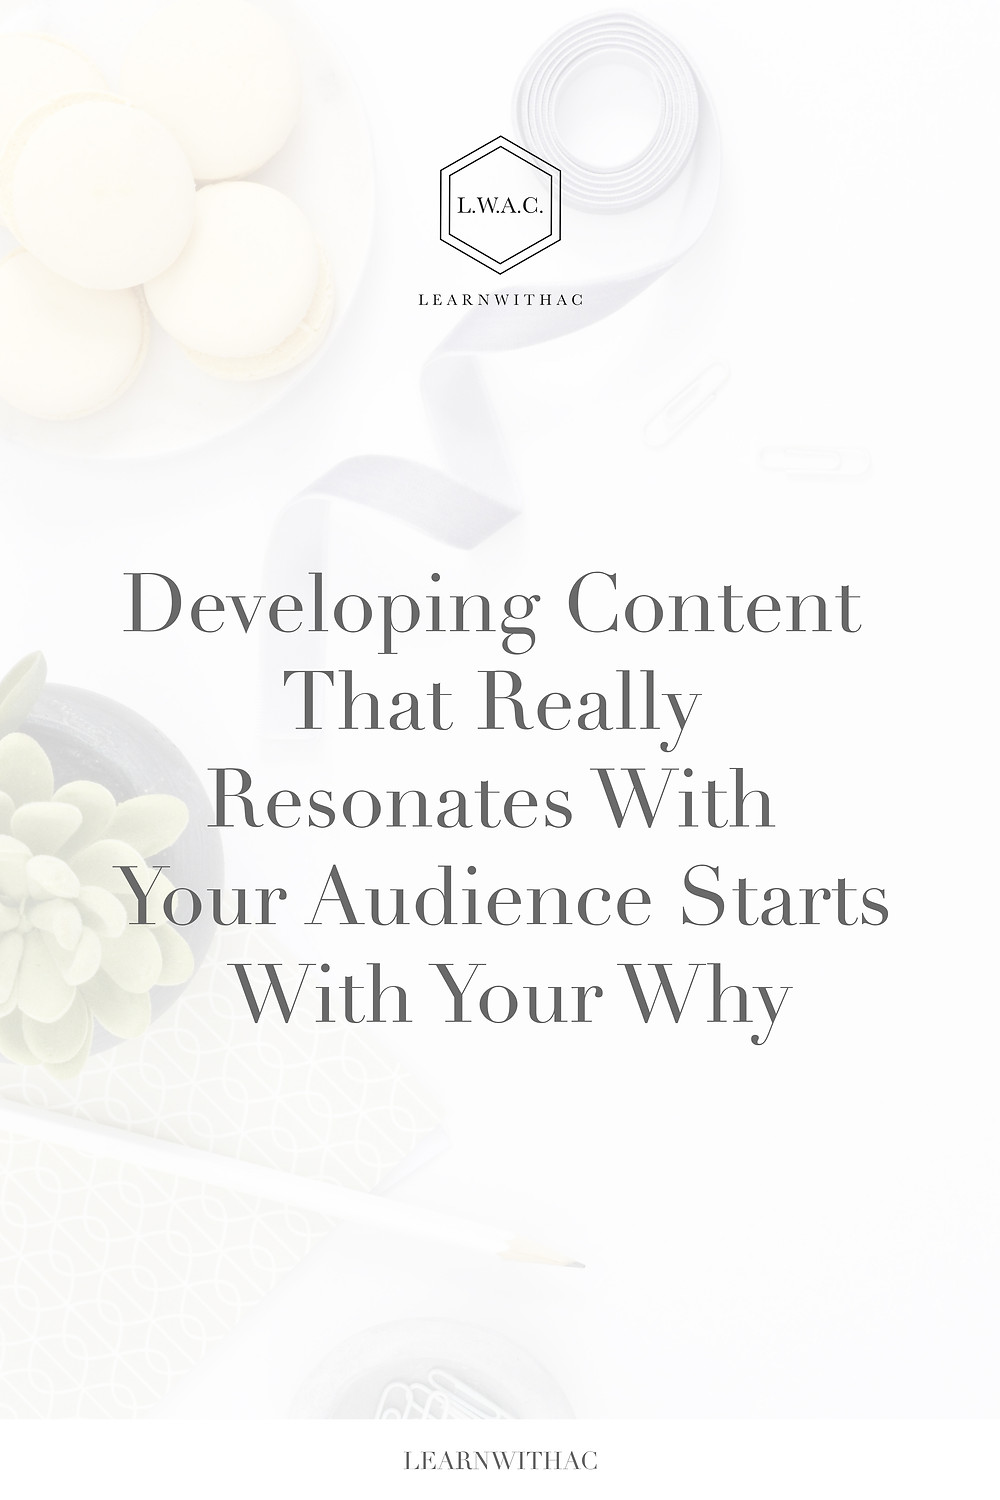 Developing Content That Really Resonates With Your Audience Starts With Your Why